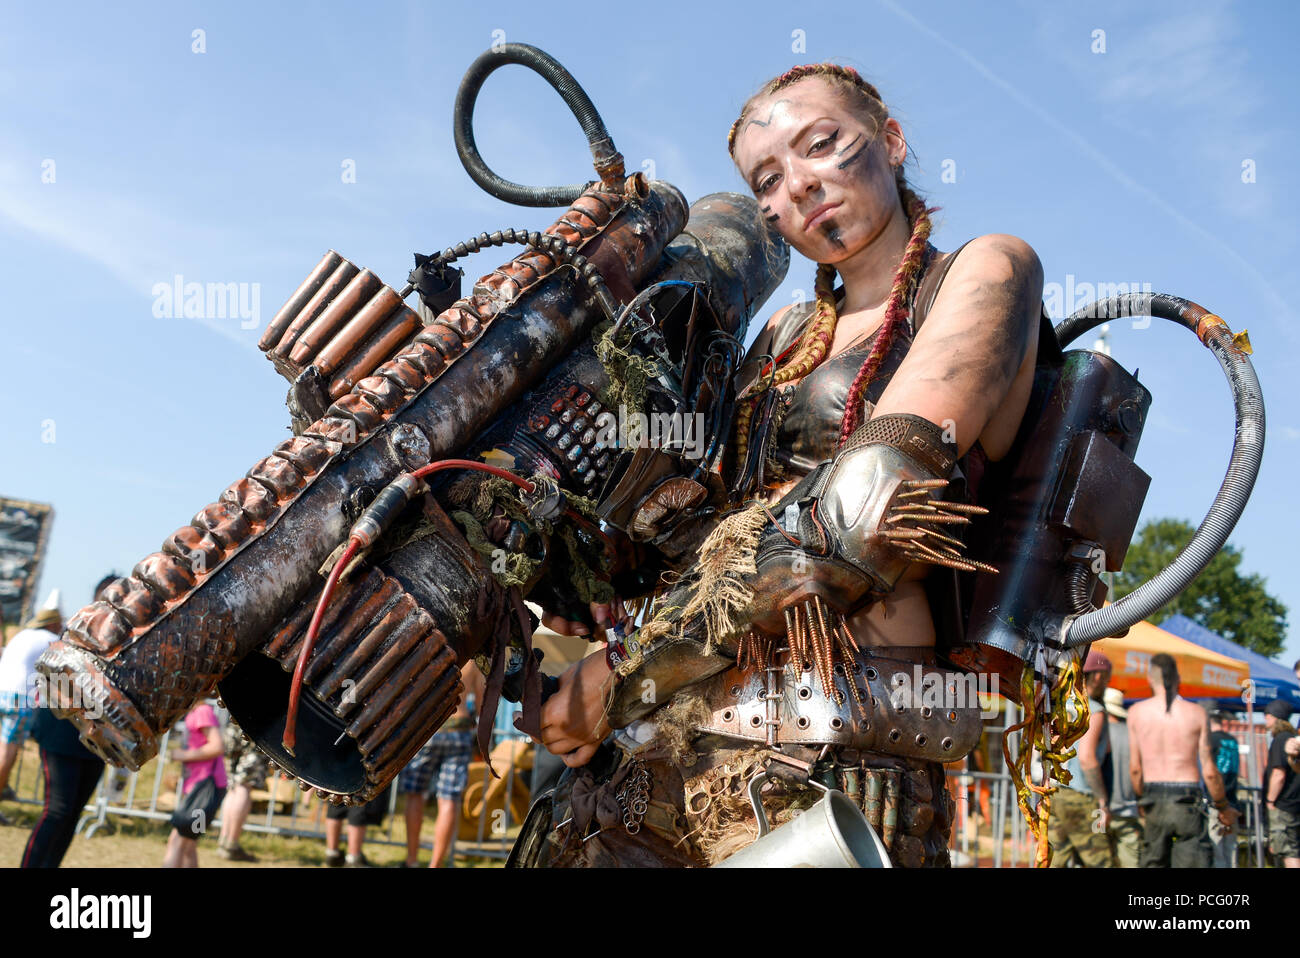 Wacken, Germany. 02nd Aug, 2018. A festival visitor wears an end-time outfit at the Wacken Open Air. According to the organisers, the world's largest heavy metal festival starts with 75,000 visitors. Credit: Axel Heimken/dpa/Alamy Live News - Stock Image